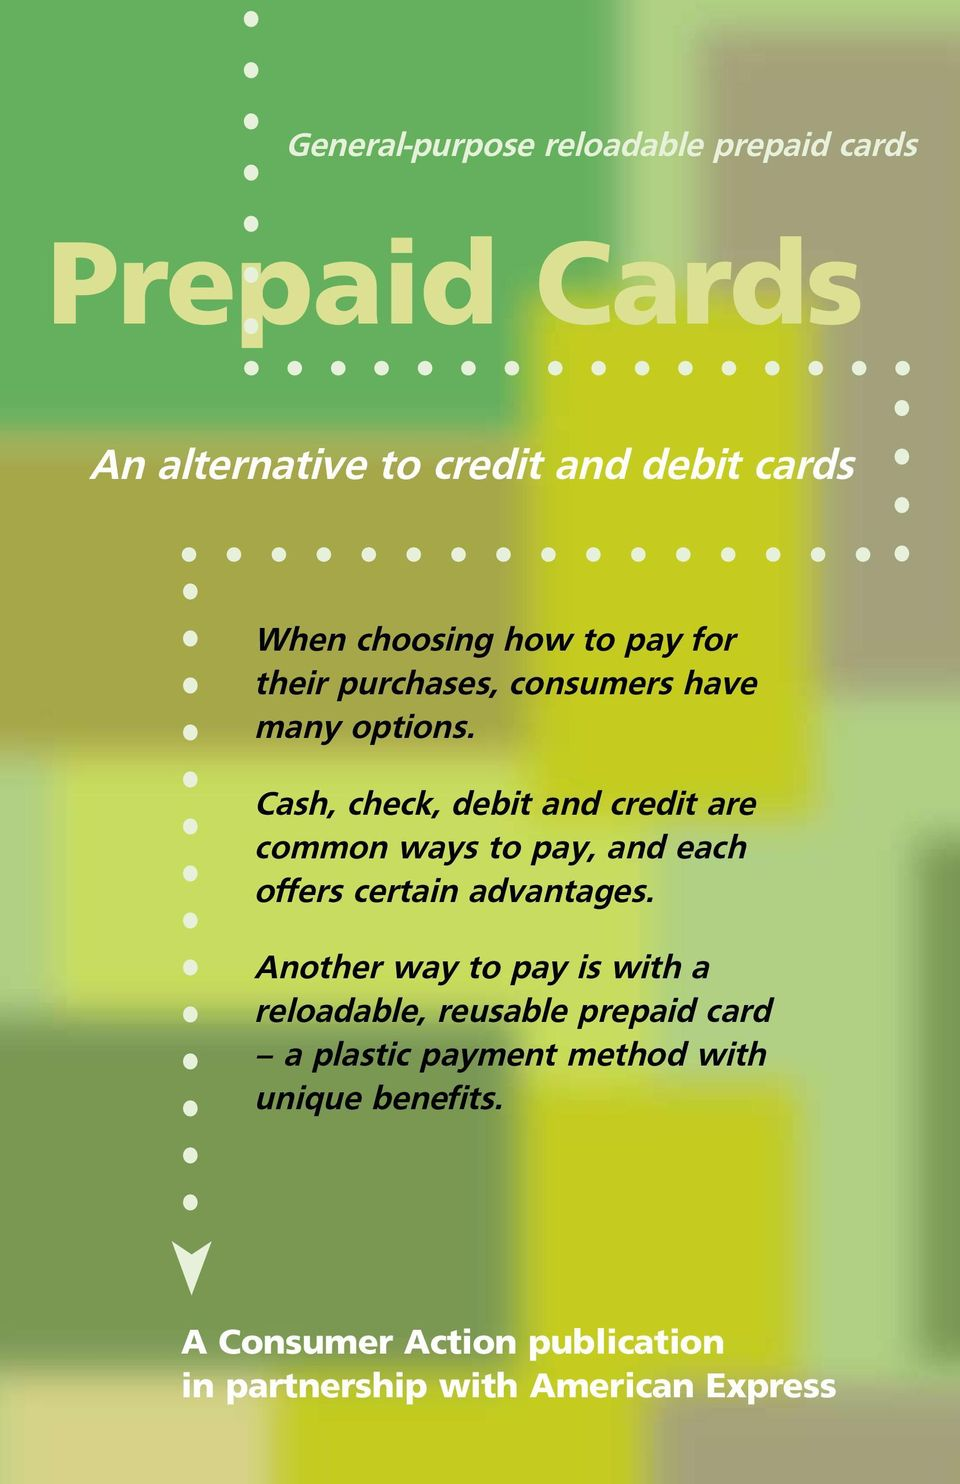 Cash, check, debit and credit are common ways to pay, and each offers certain advantages.